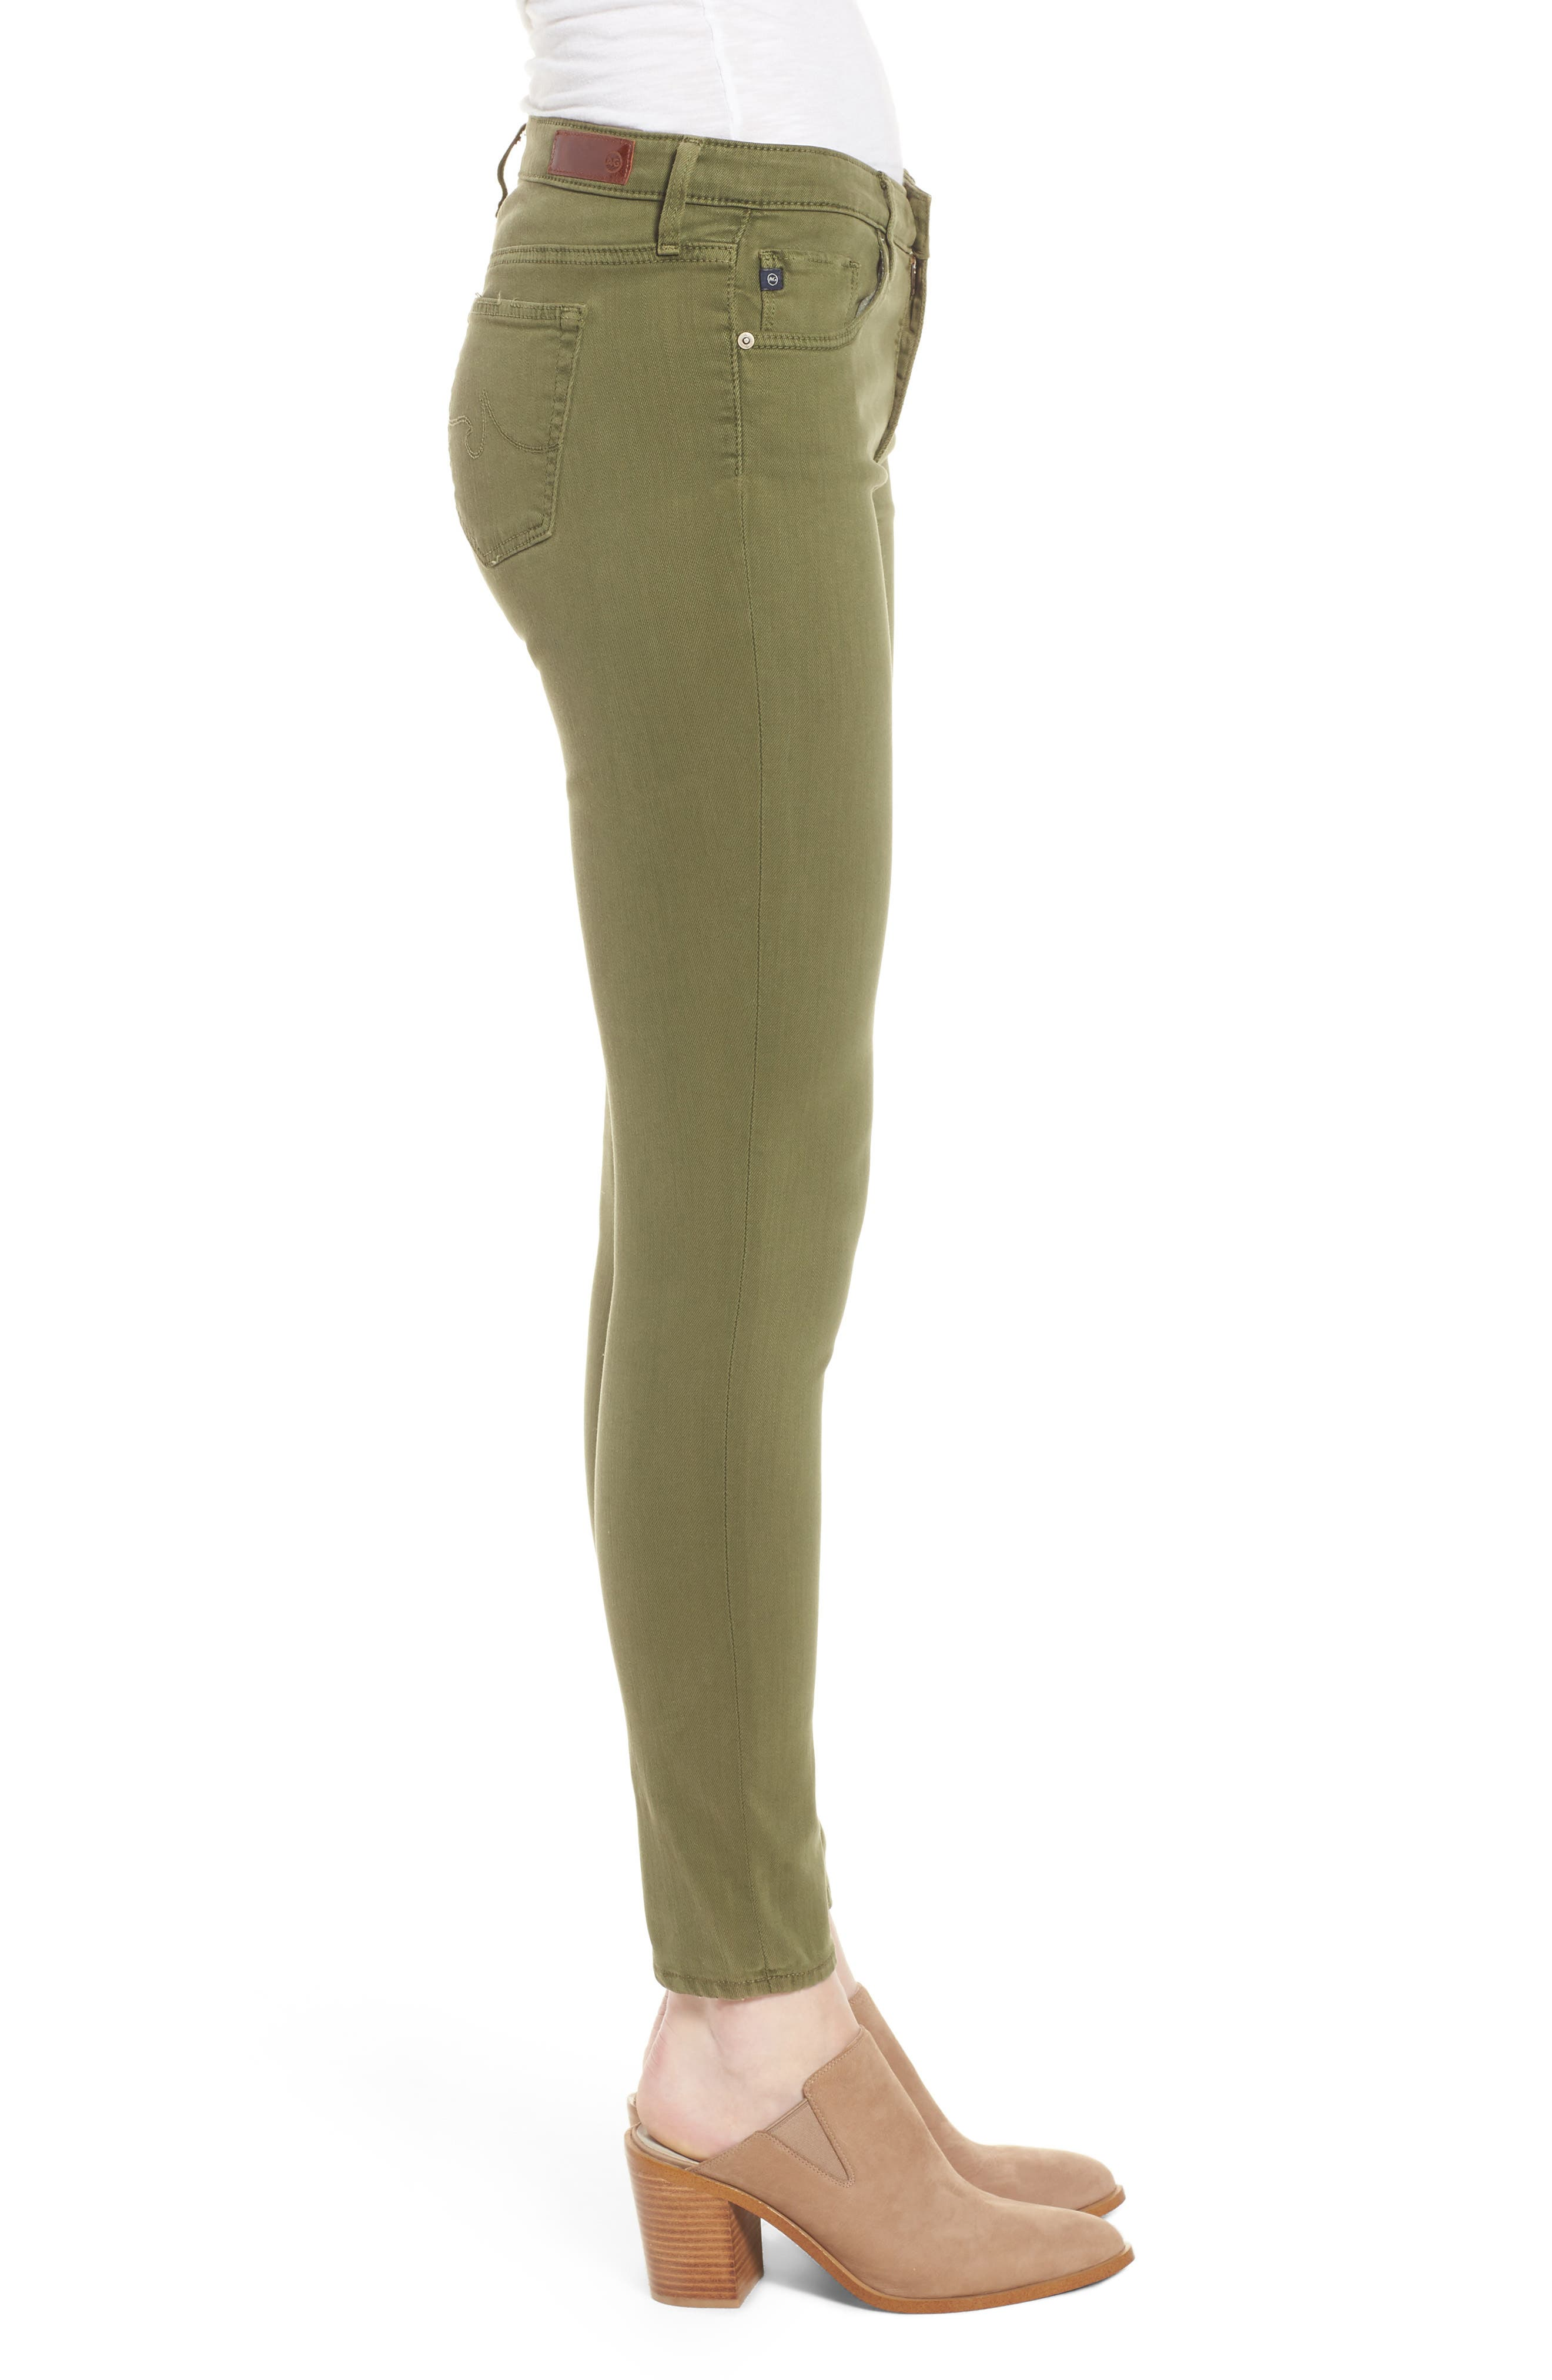 'The Legging' Ankle Jeans,                             Alternate thumbnail 3, color,                             Sulfur Olive Grove